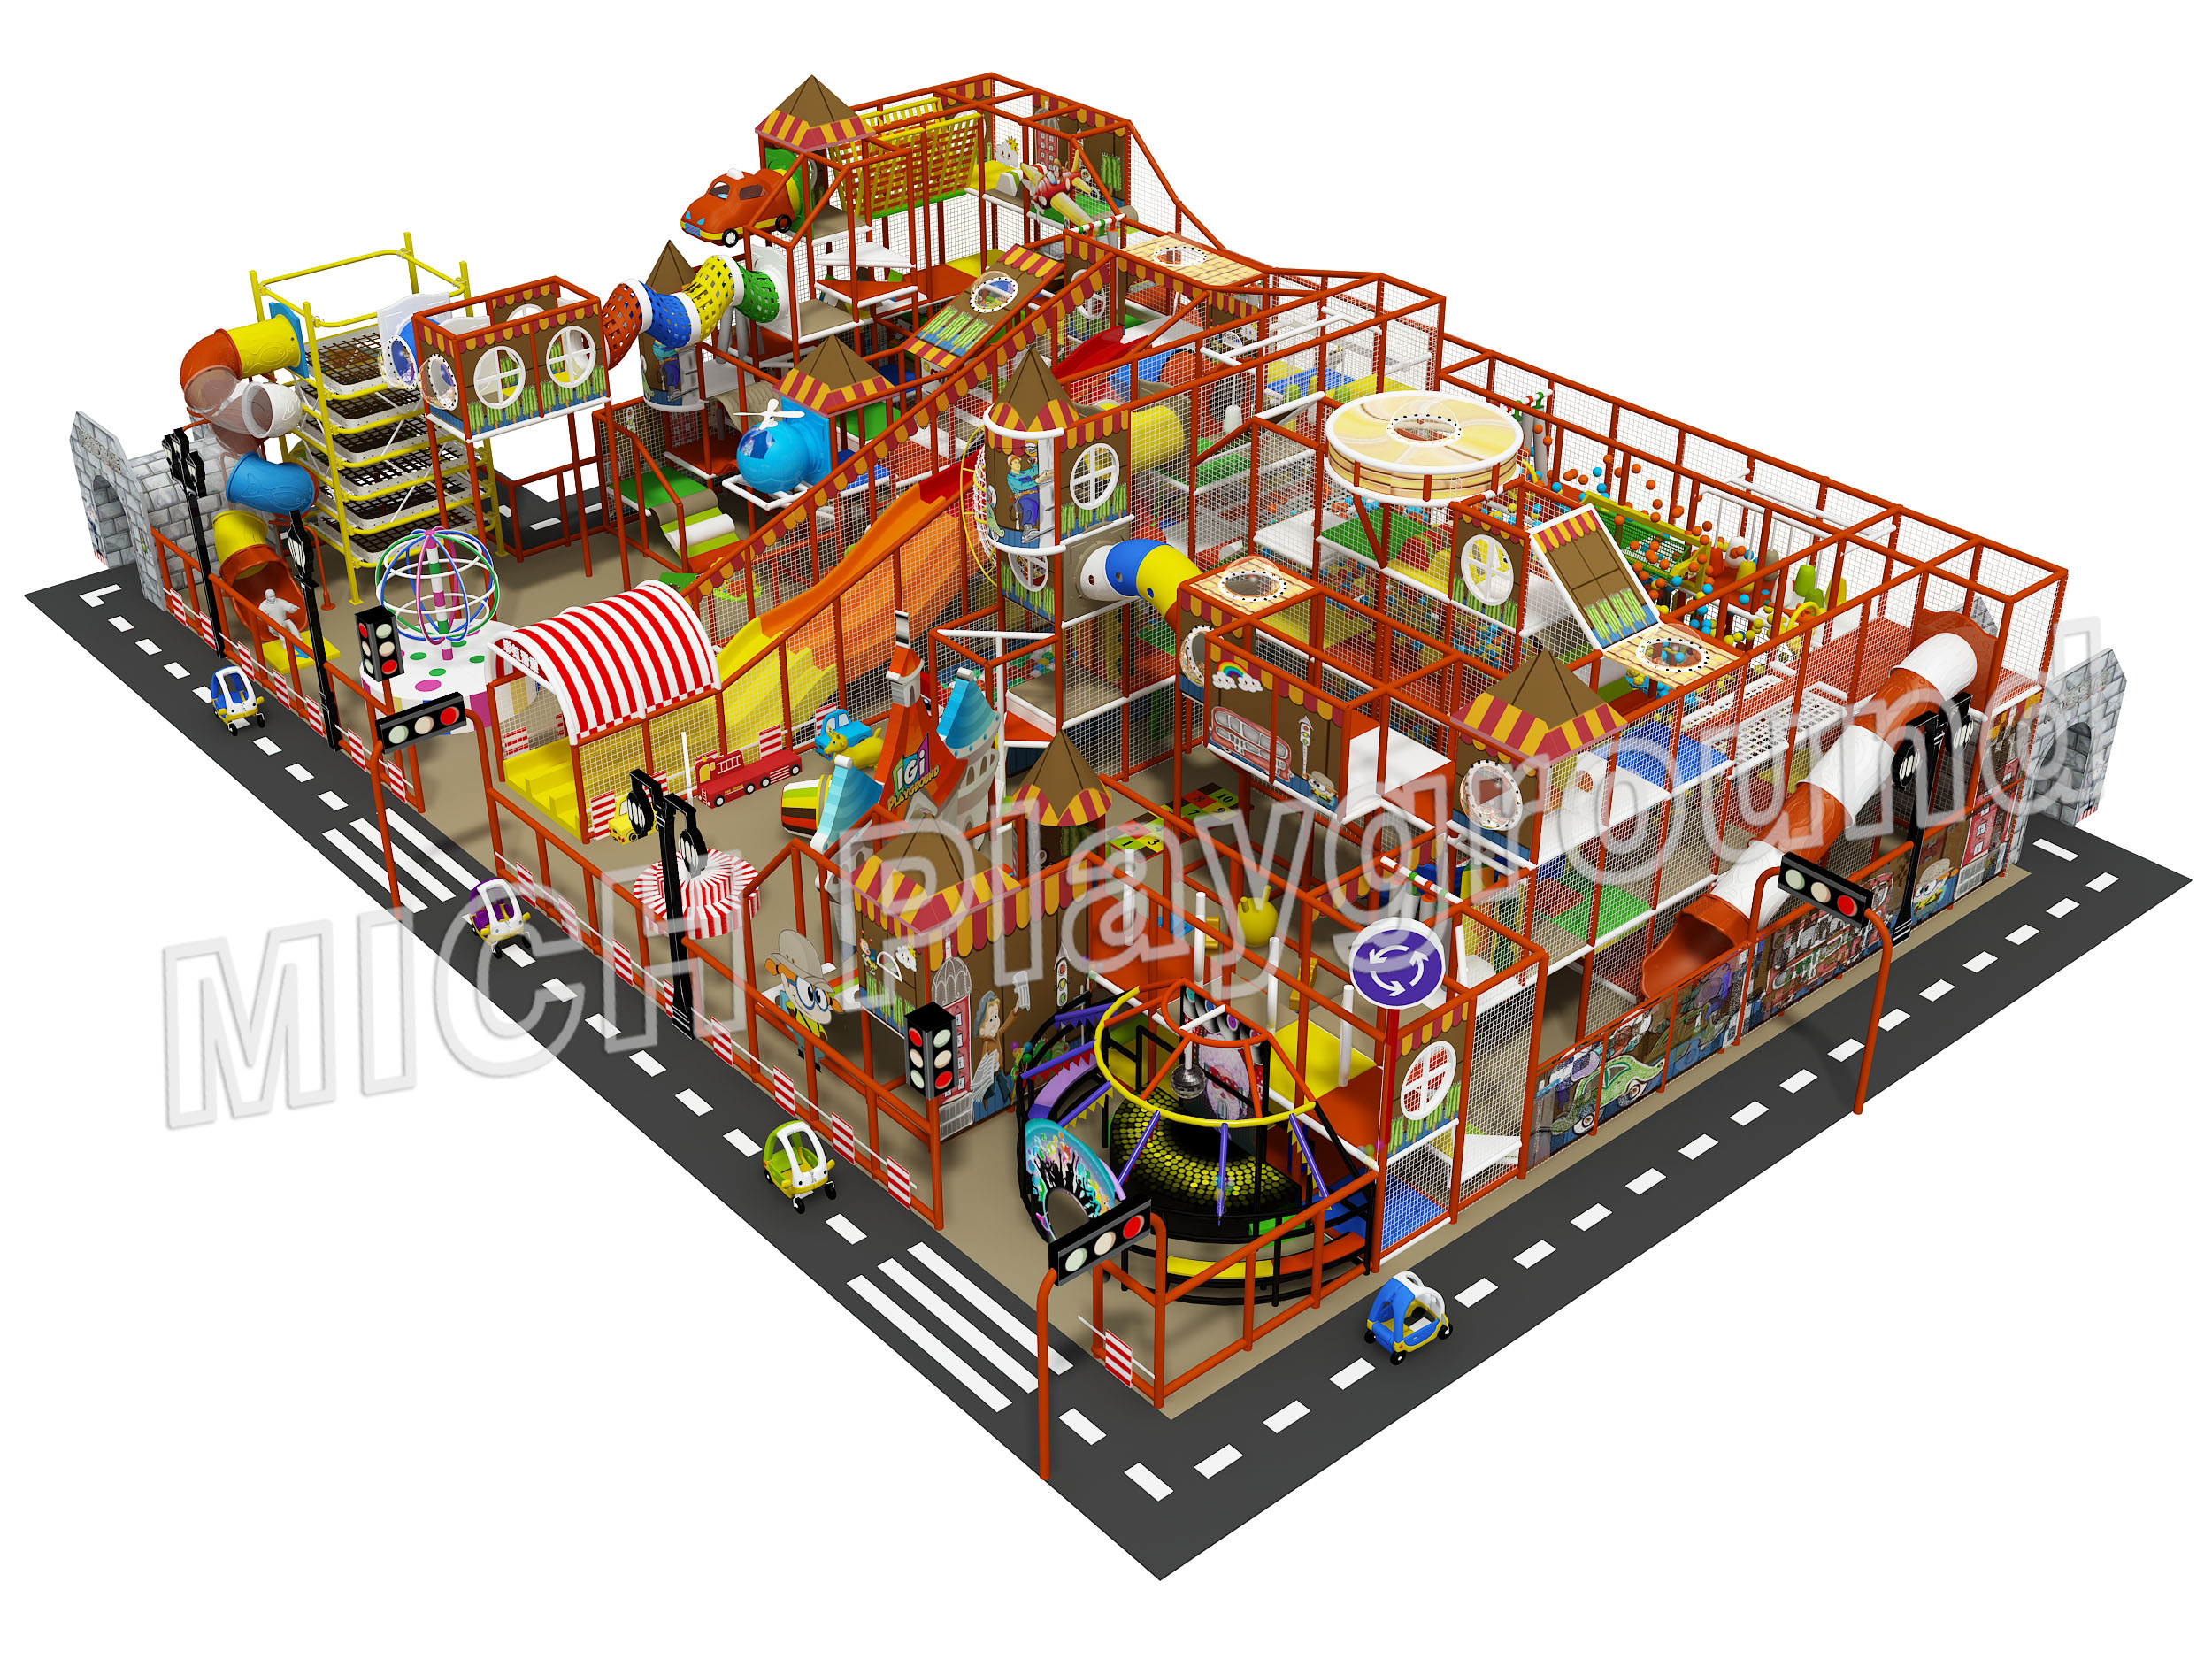 Mich Funny Indoor Amusement Playground 6625B